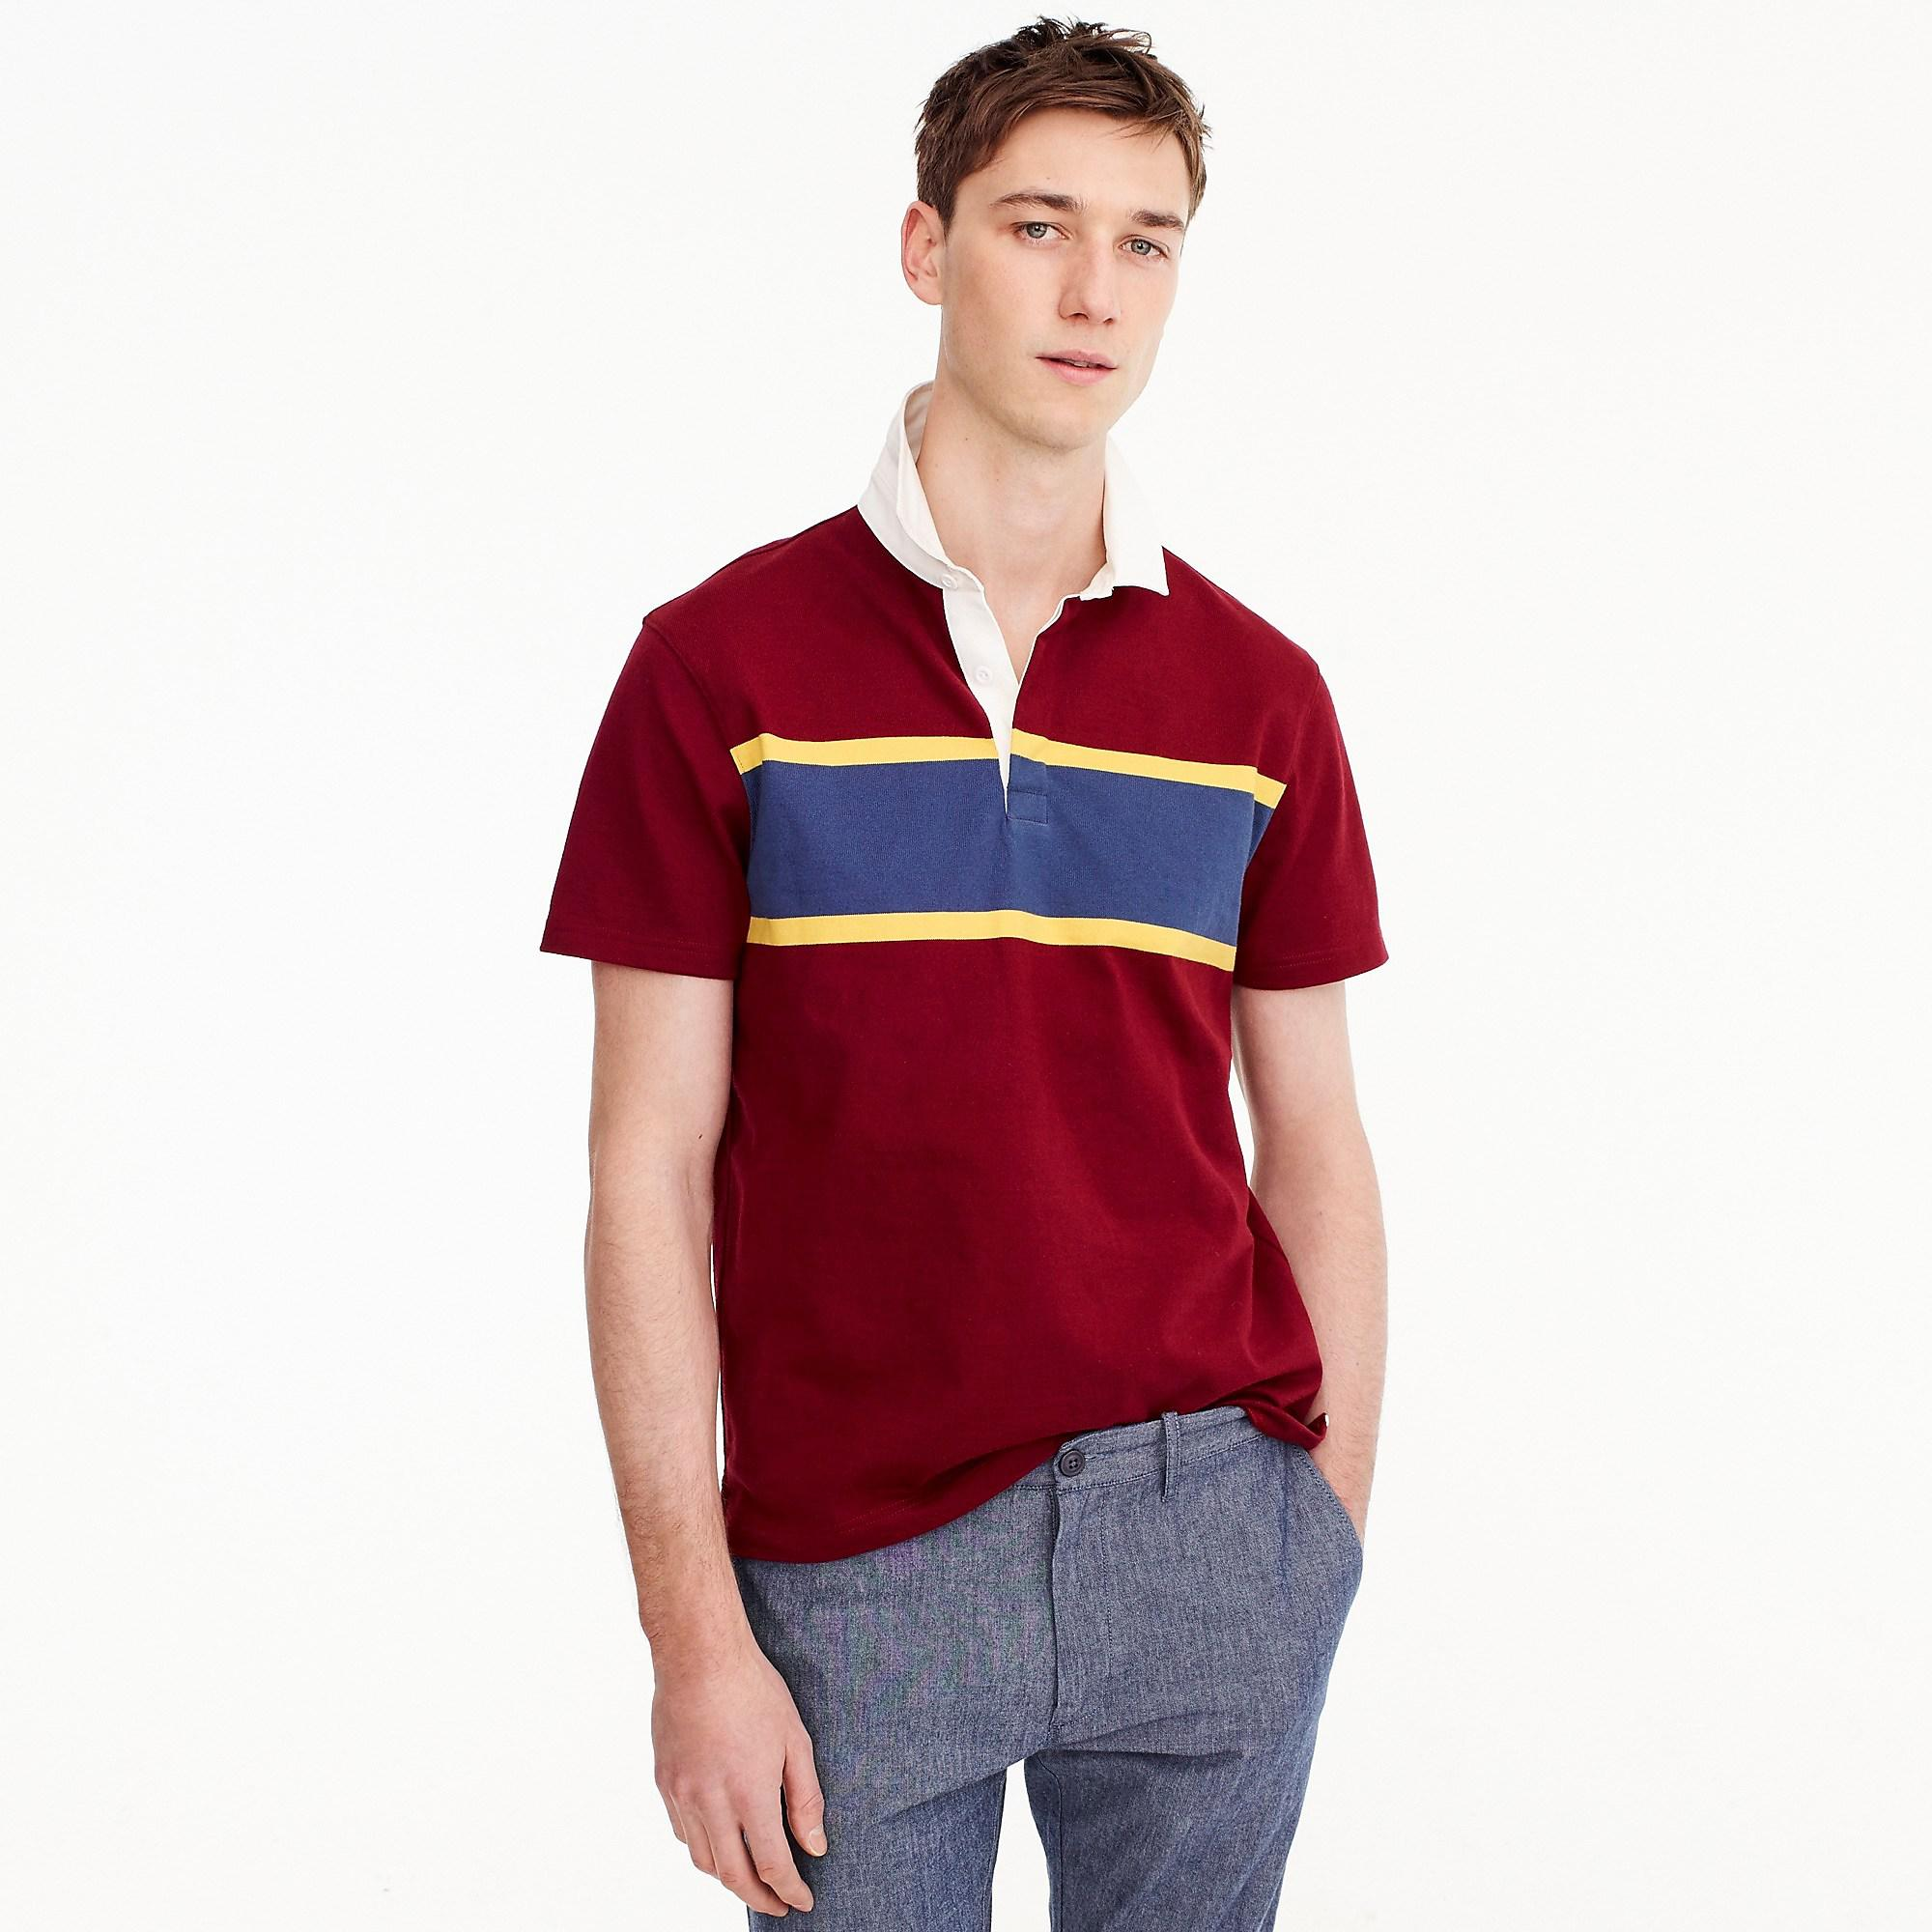 6559239c662 Lyst - J.Crew Tall Short-sleeve 1984 Rugby Shirt In Red in Red for Men